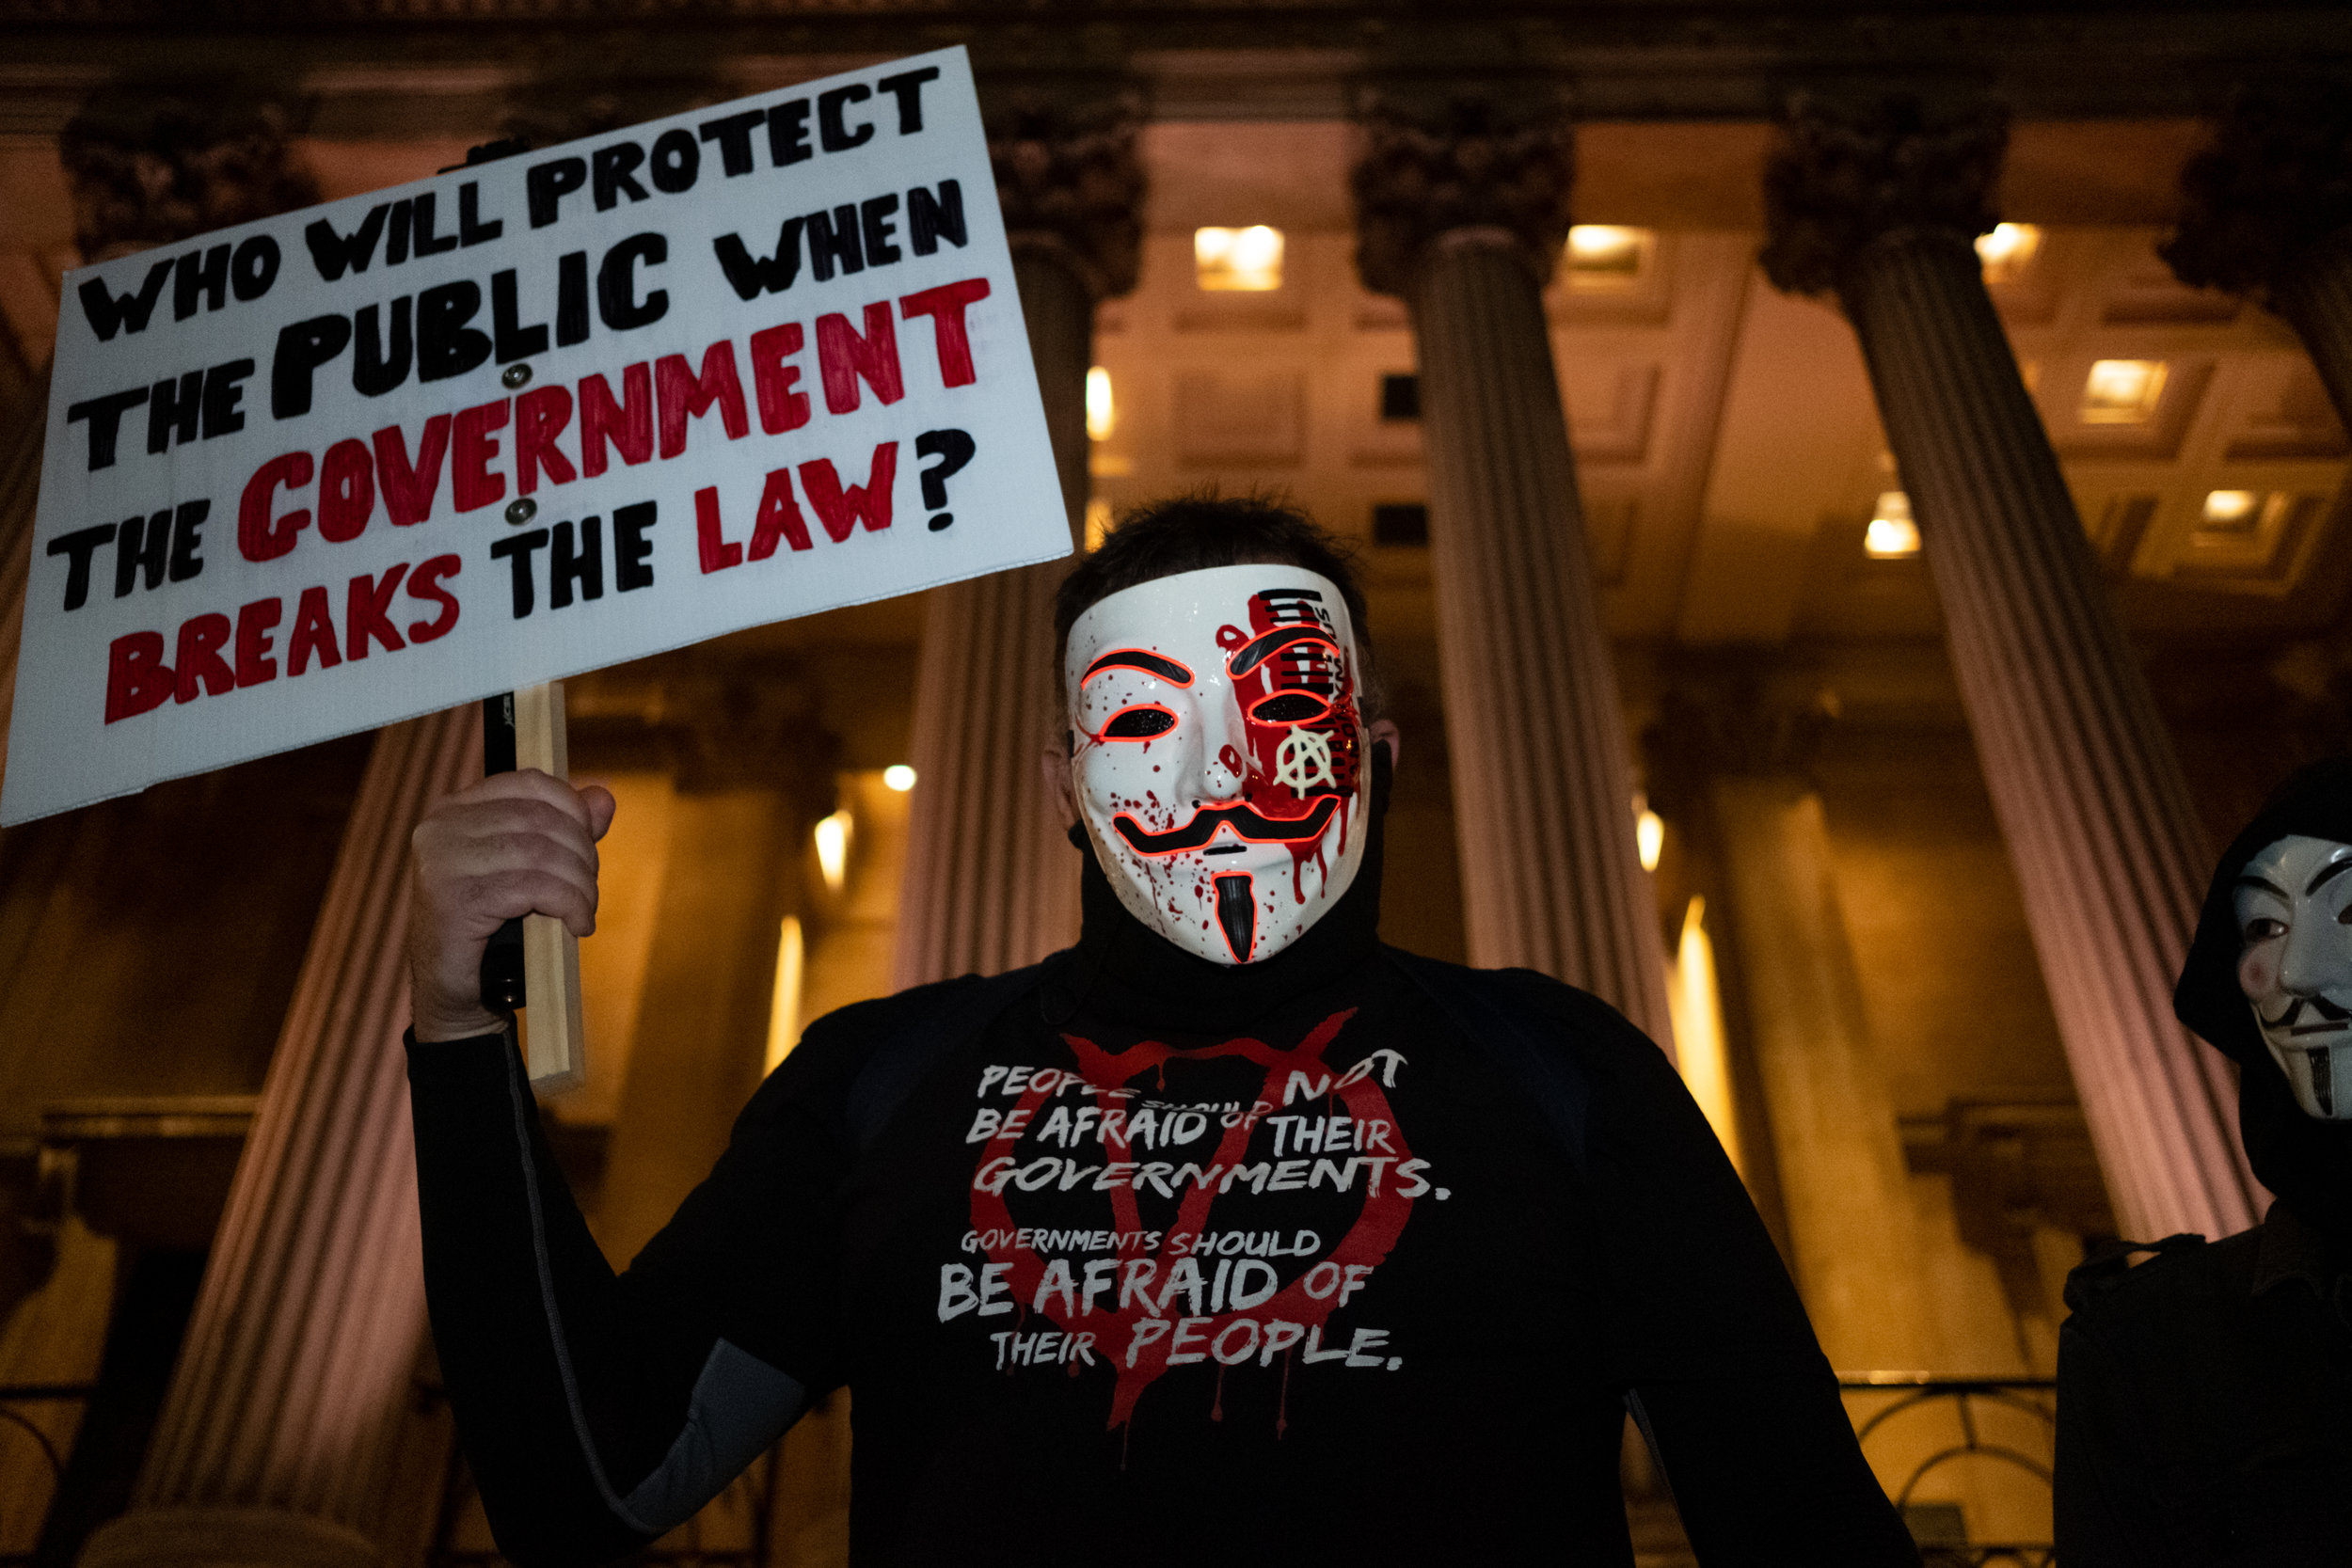 Million Mask March rally in central London on the 5th November 2018 with Anonymous supporters wearing the iconic Guy Fawkes mask.